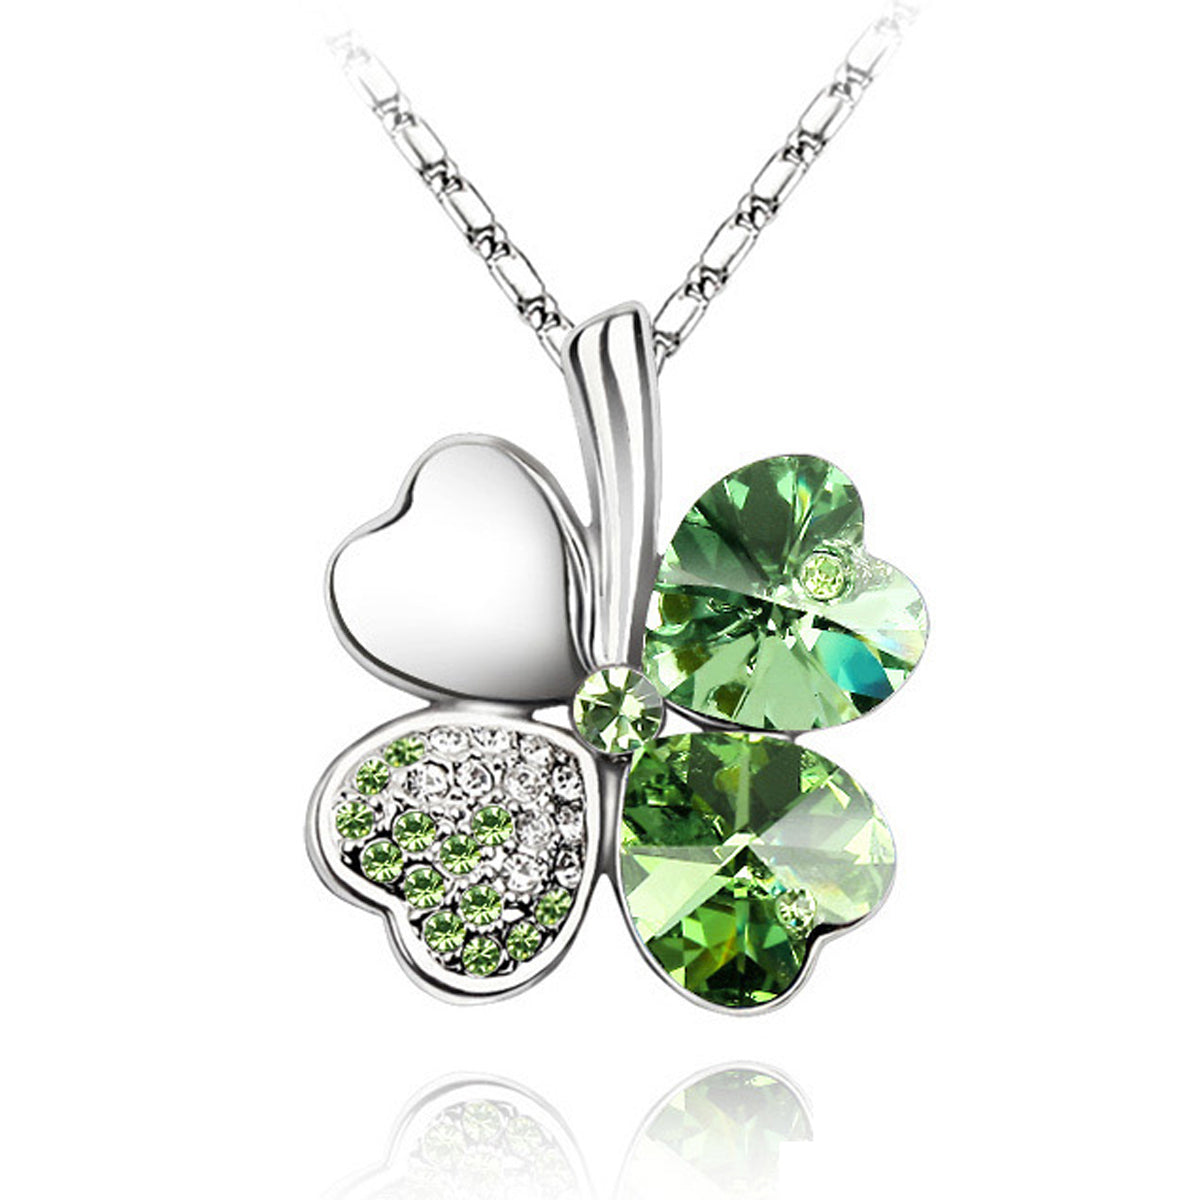 Gold Plated Swarovski Elements Crystal Four Leaf Clover Pendant Necklace